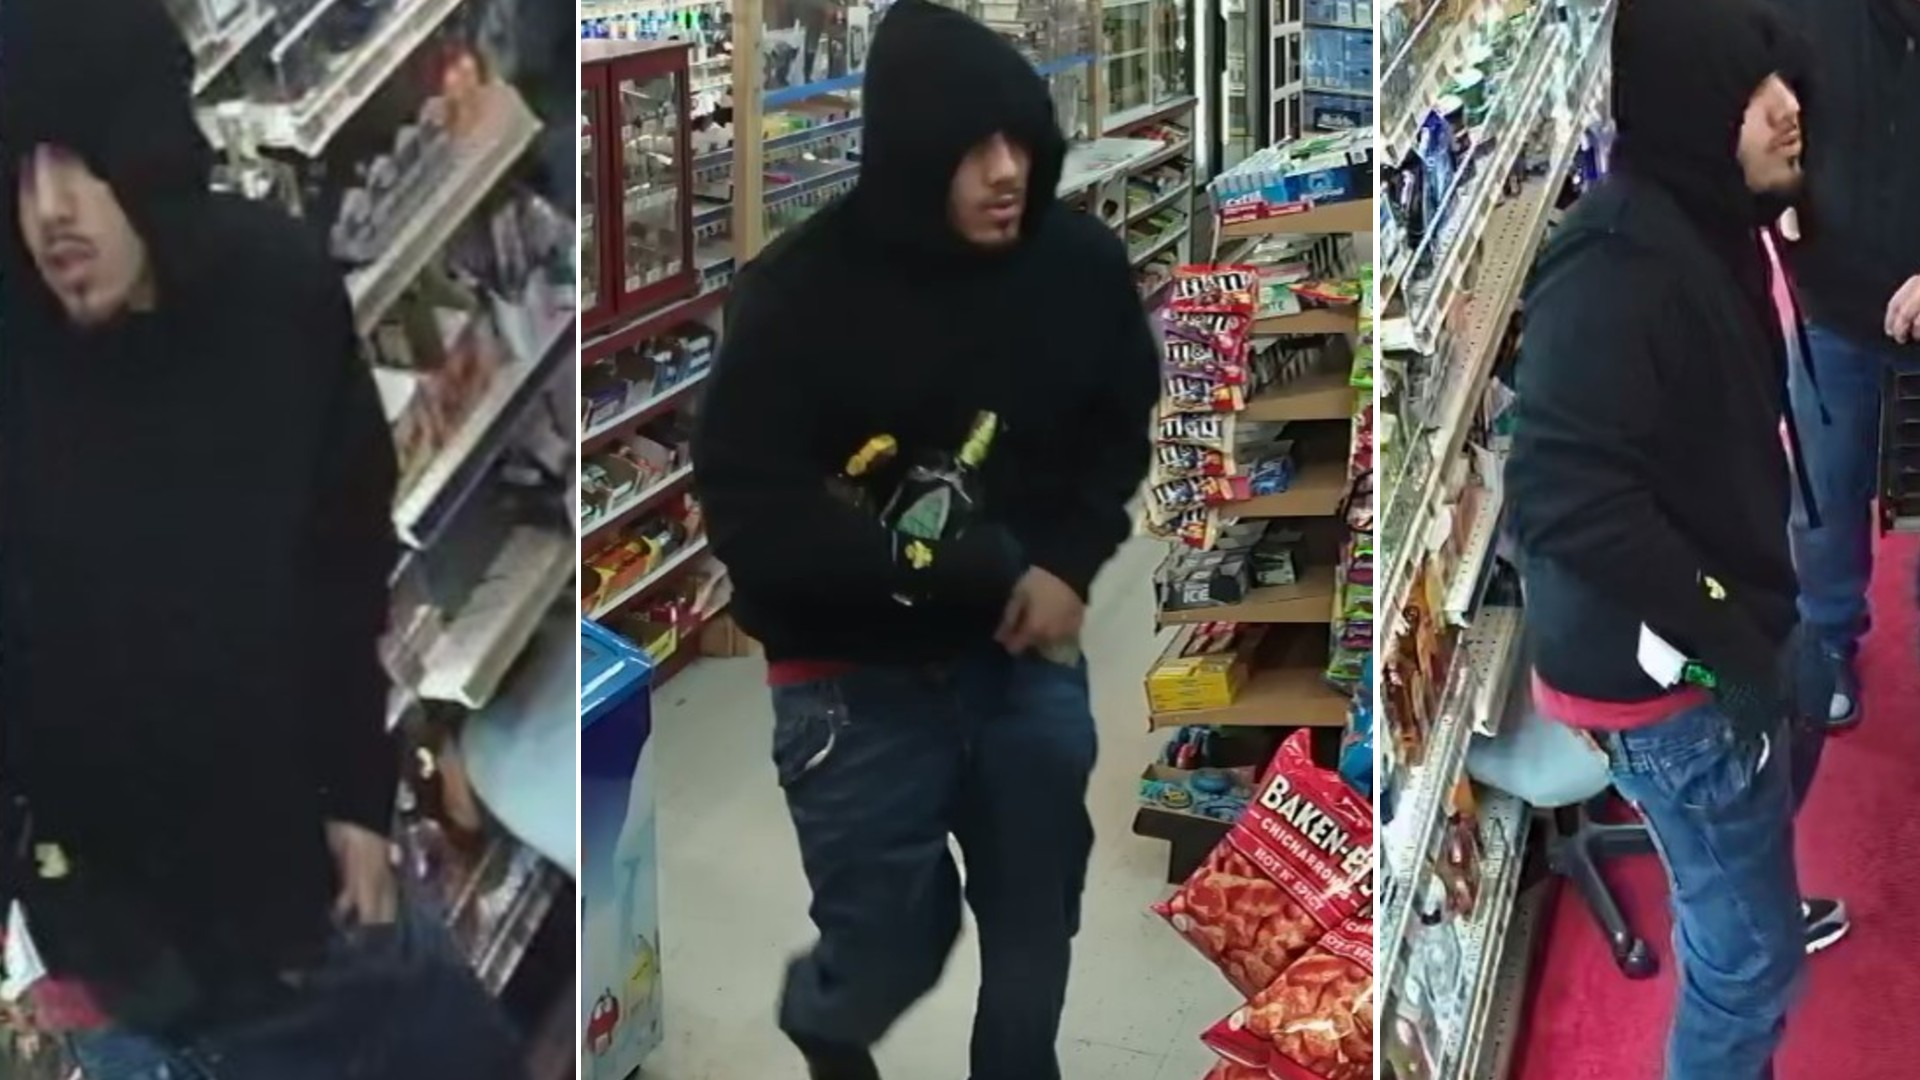 Authorities are seeking the public's help to identify a man caught on security camera footage robbing a liquor store in Oxnard on Jan. 11, 2021. (Ventura County Sheriff's Office)